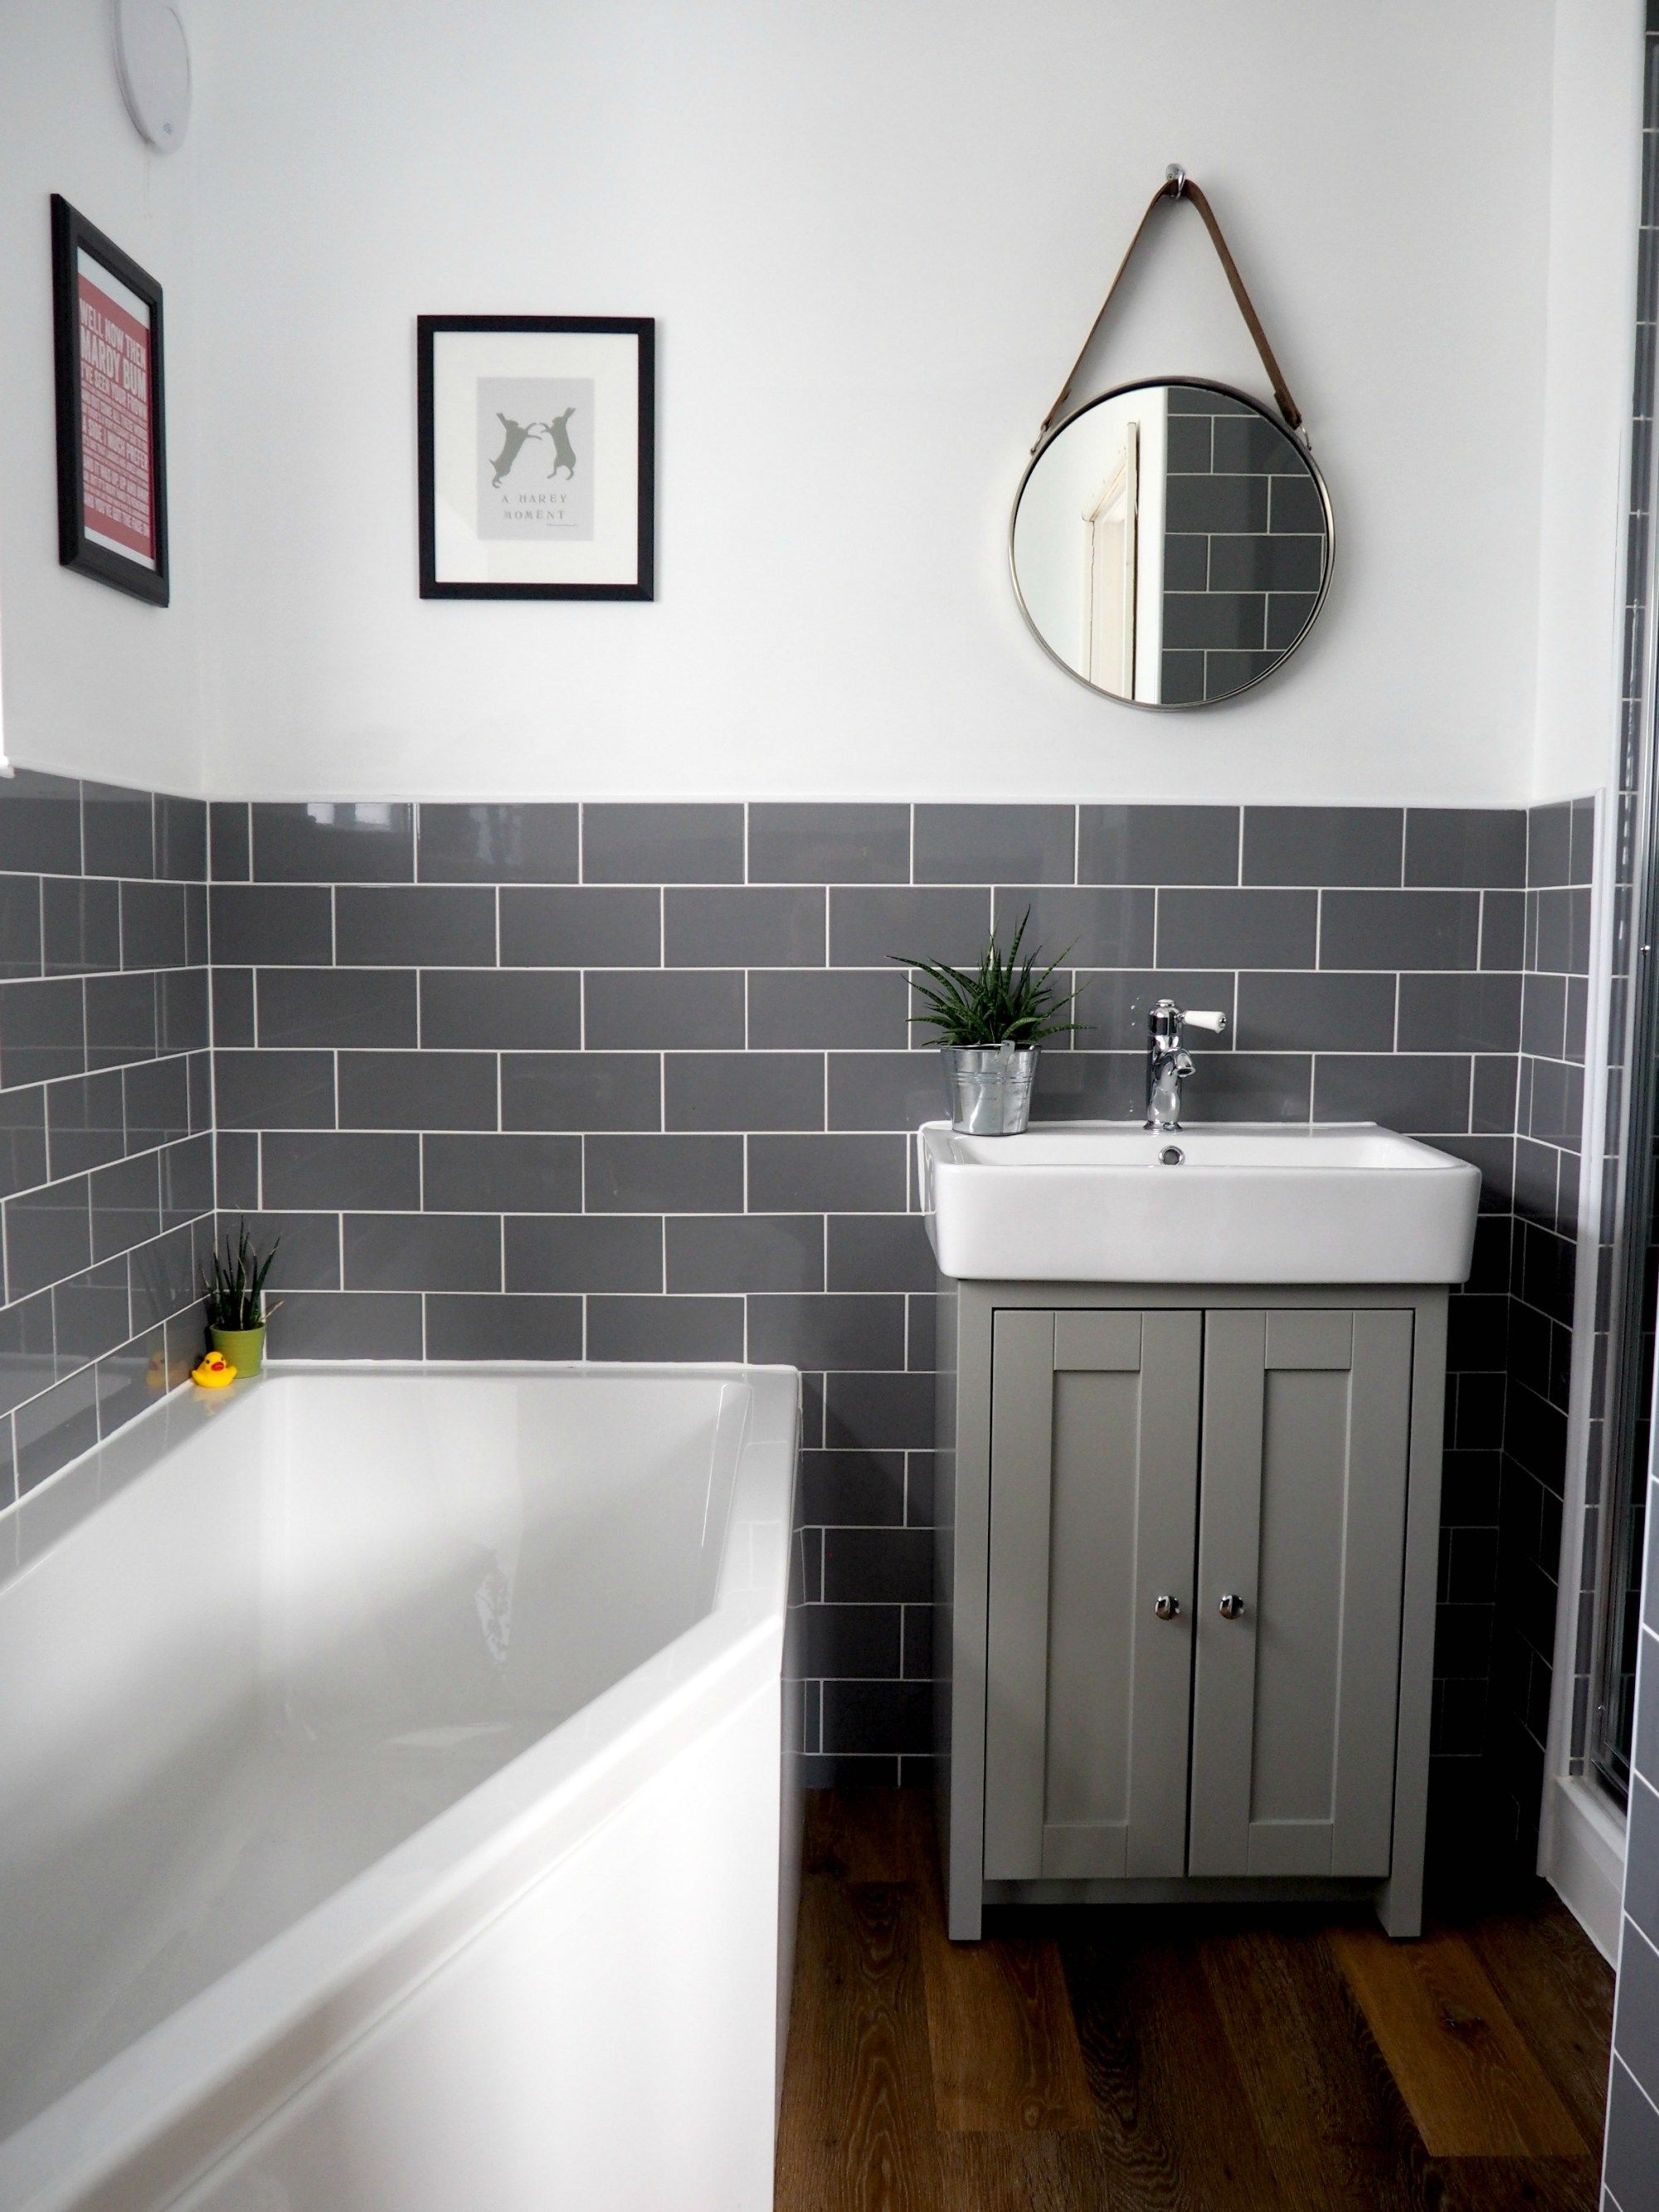 Our Brand New Bathroom Renovation   Grey Subway Tiles Part 65